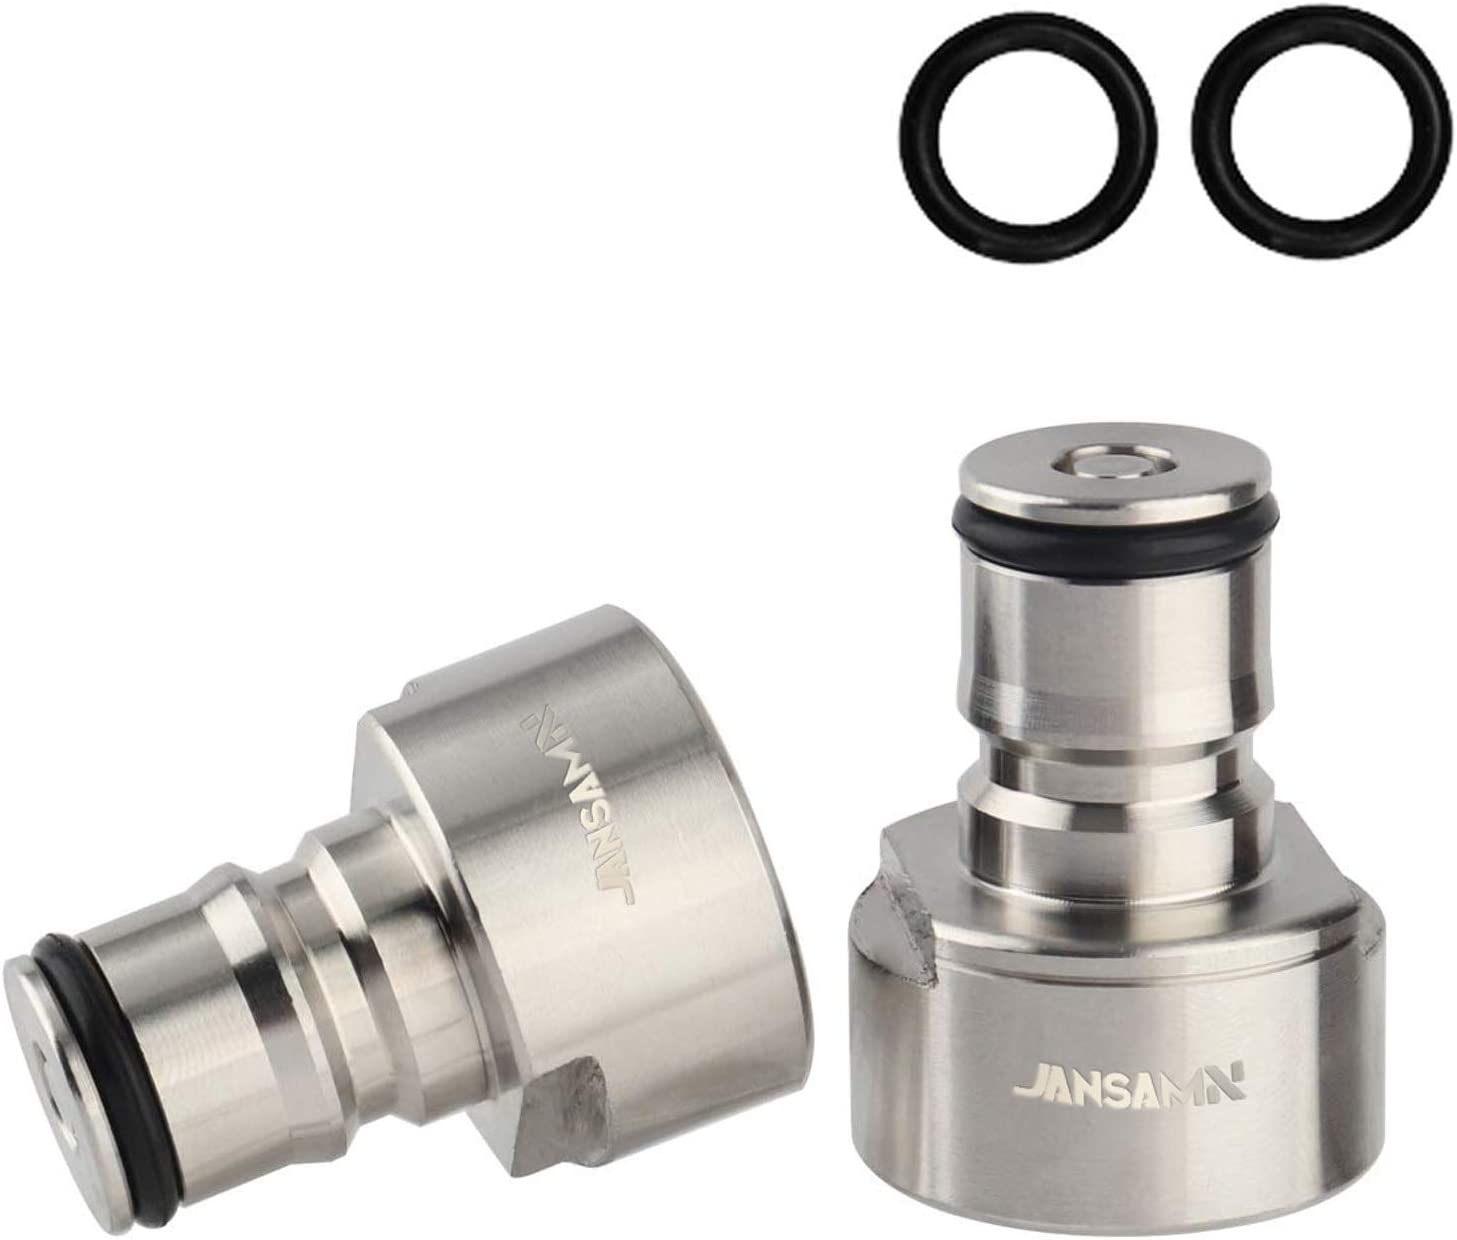 Jansamn Keg Coupler Stainless Steel Ball Lock Posts 5/8 NPT Thread Sanke Adapter Quick Disconnect Conversion Kit For Homebrewing, Silver